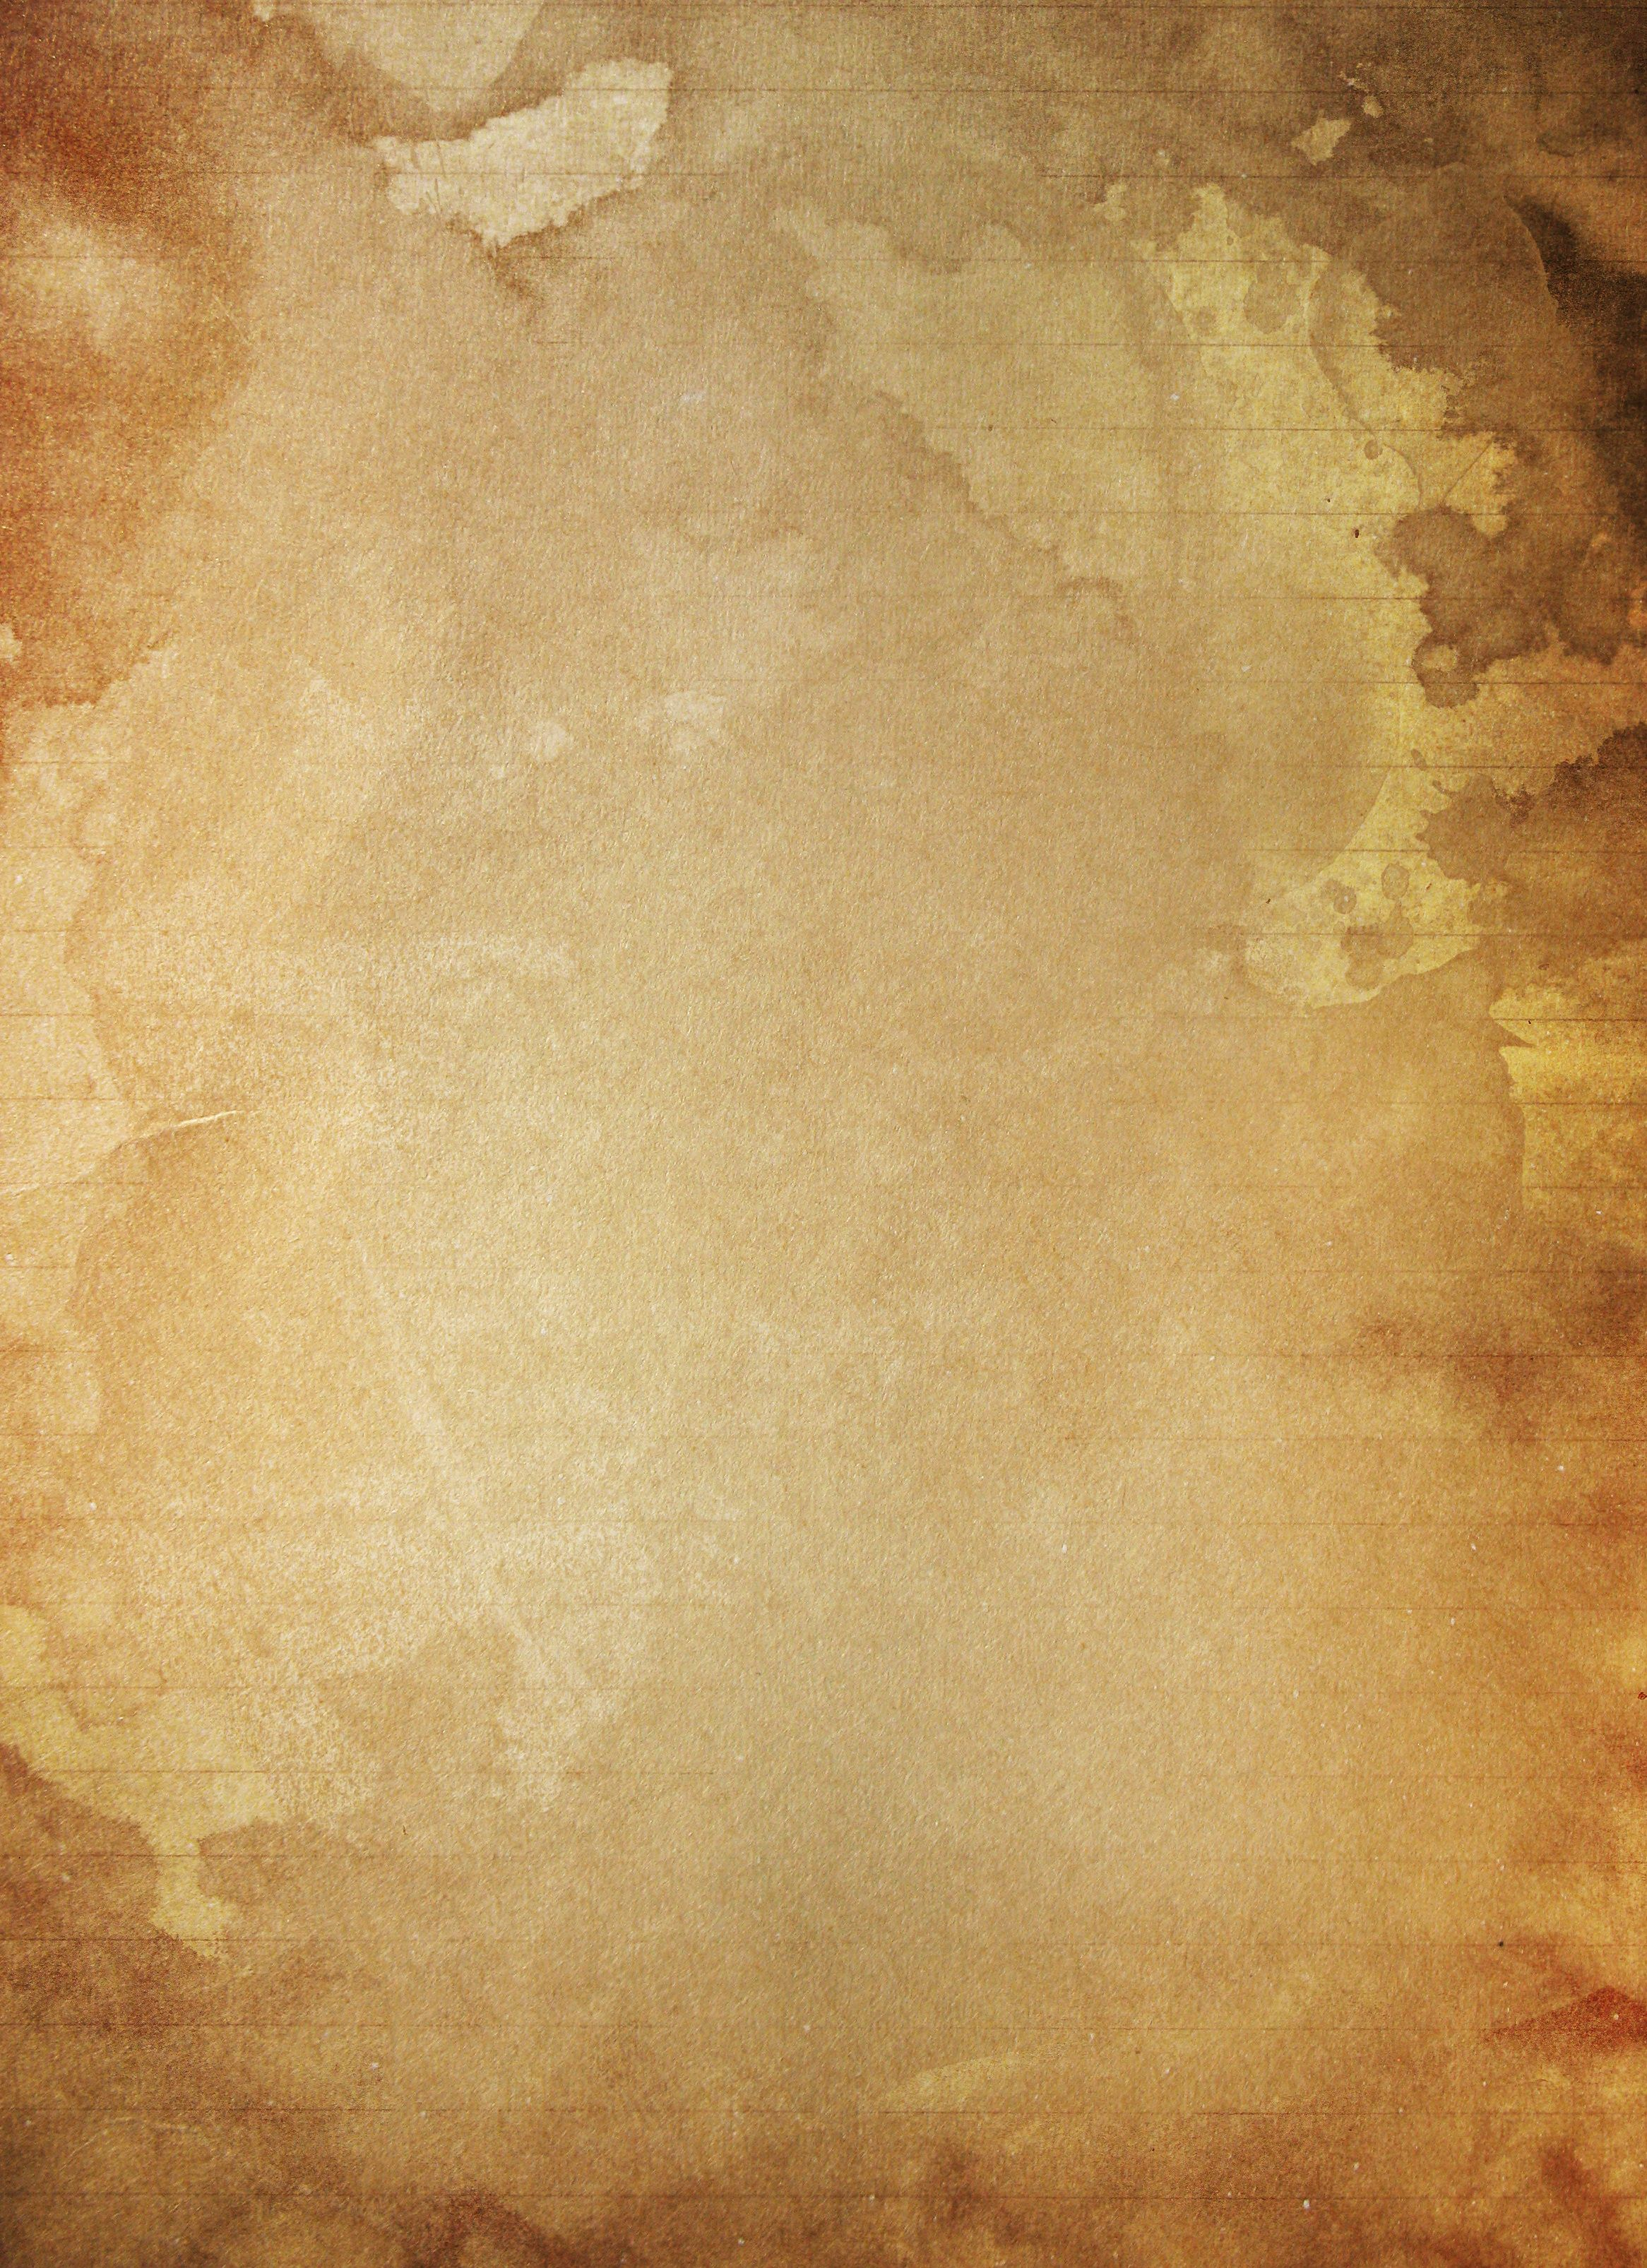 Tan Stained Paper Texture 2 Backgrounds Amp Textures